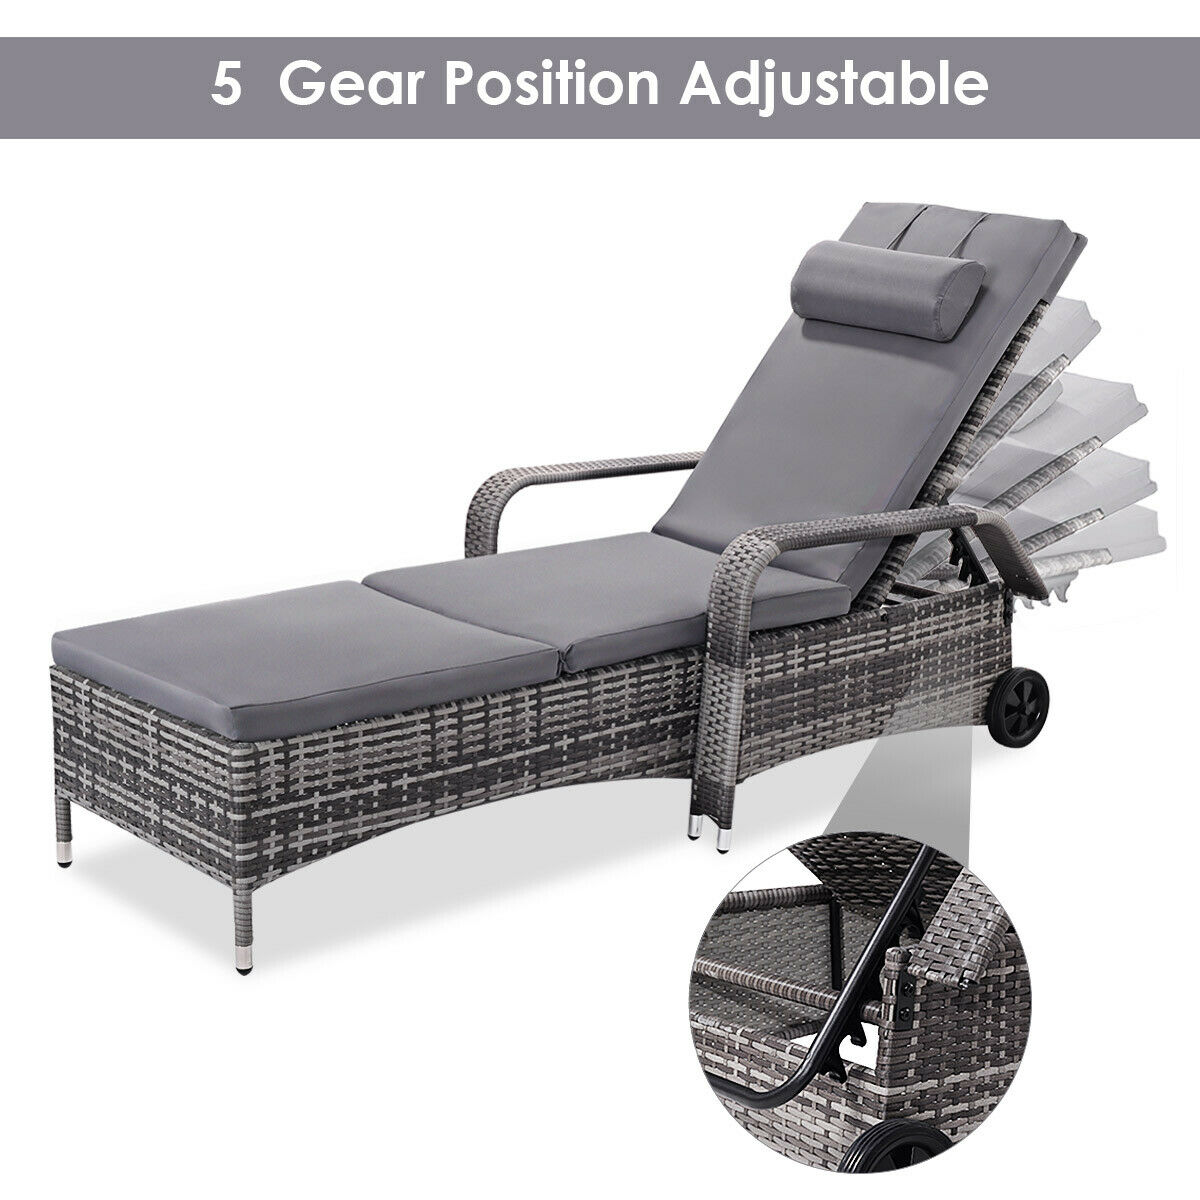 Outdoor Chaise Lounge.Costway Outdoor Chaise Lounge Chair Recliner Cushioned Patio Furni Adjustable W Wheels